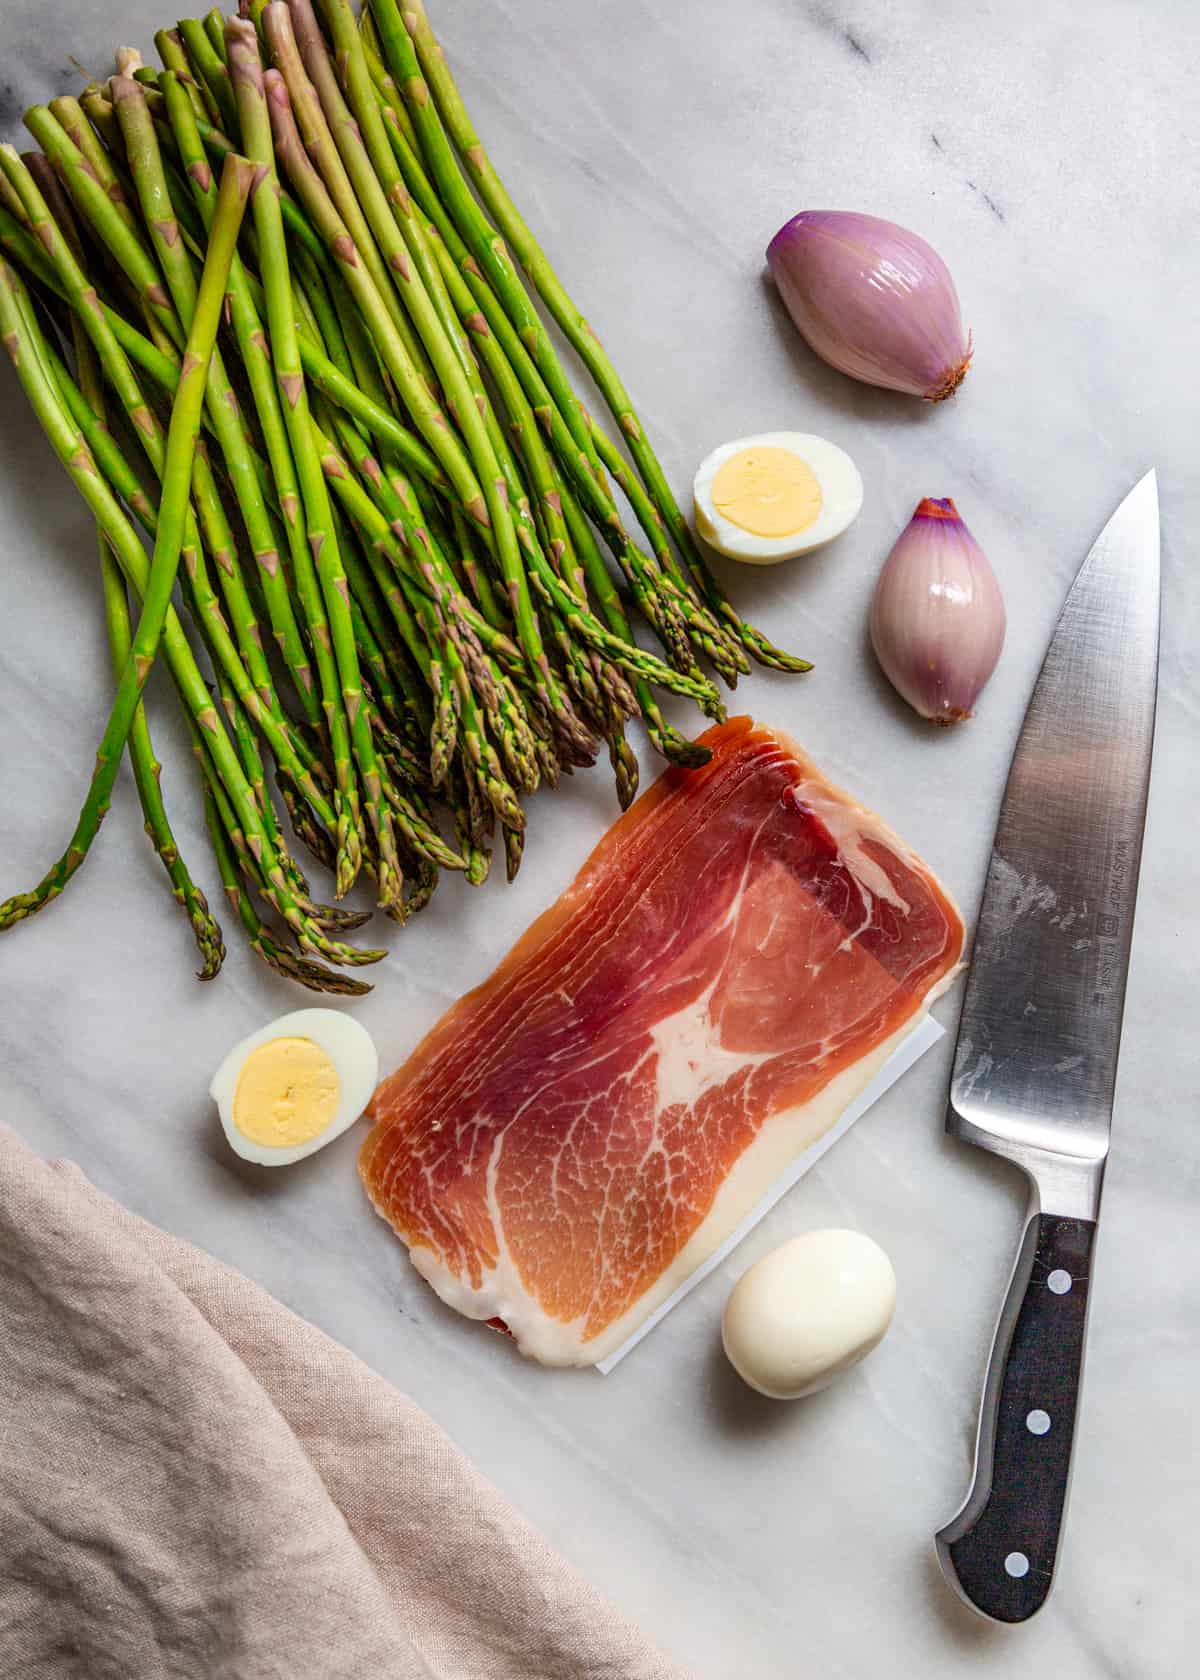 raw stalks of green vegetable, prosciutto, eggs and shallots on marble top counter with a chef's knife